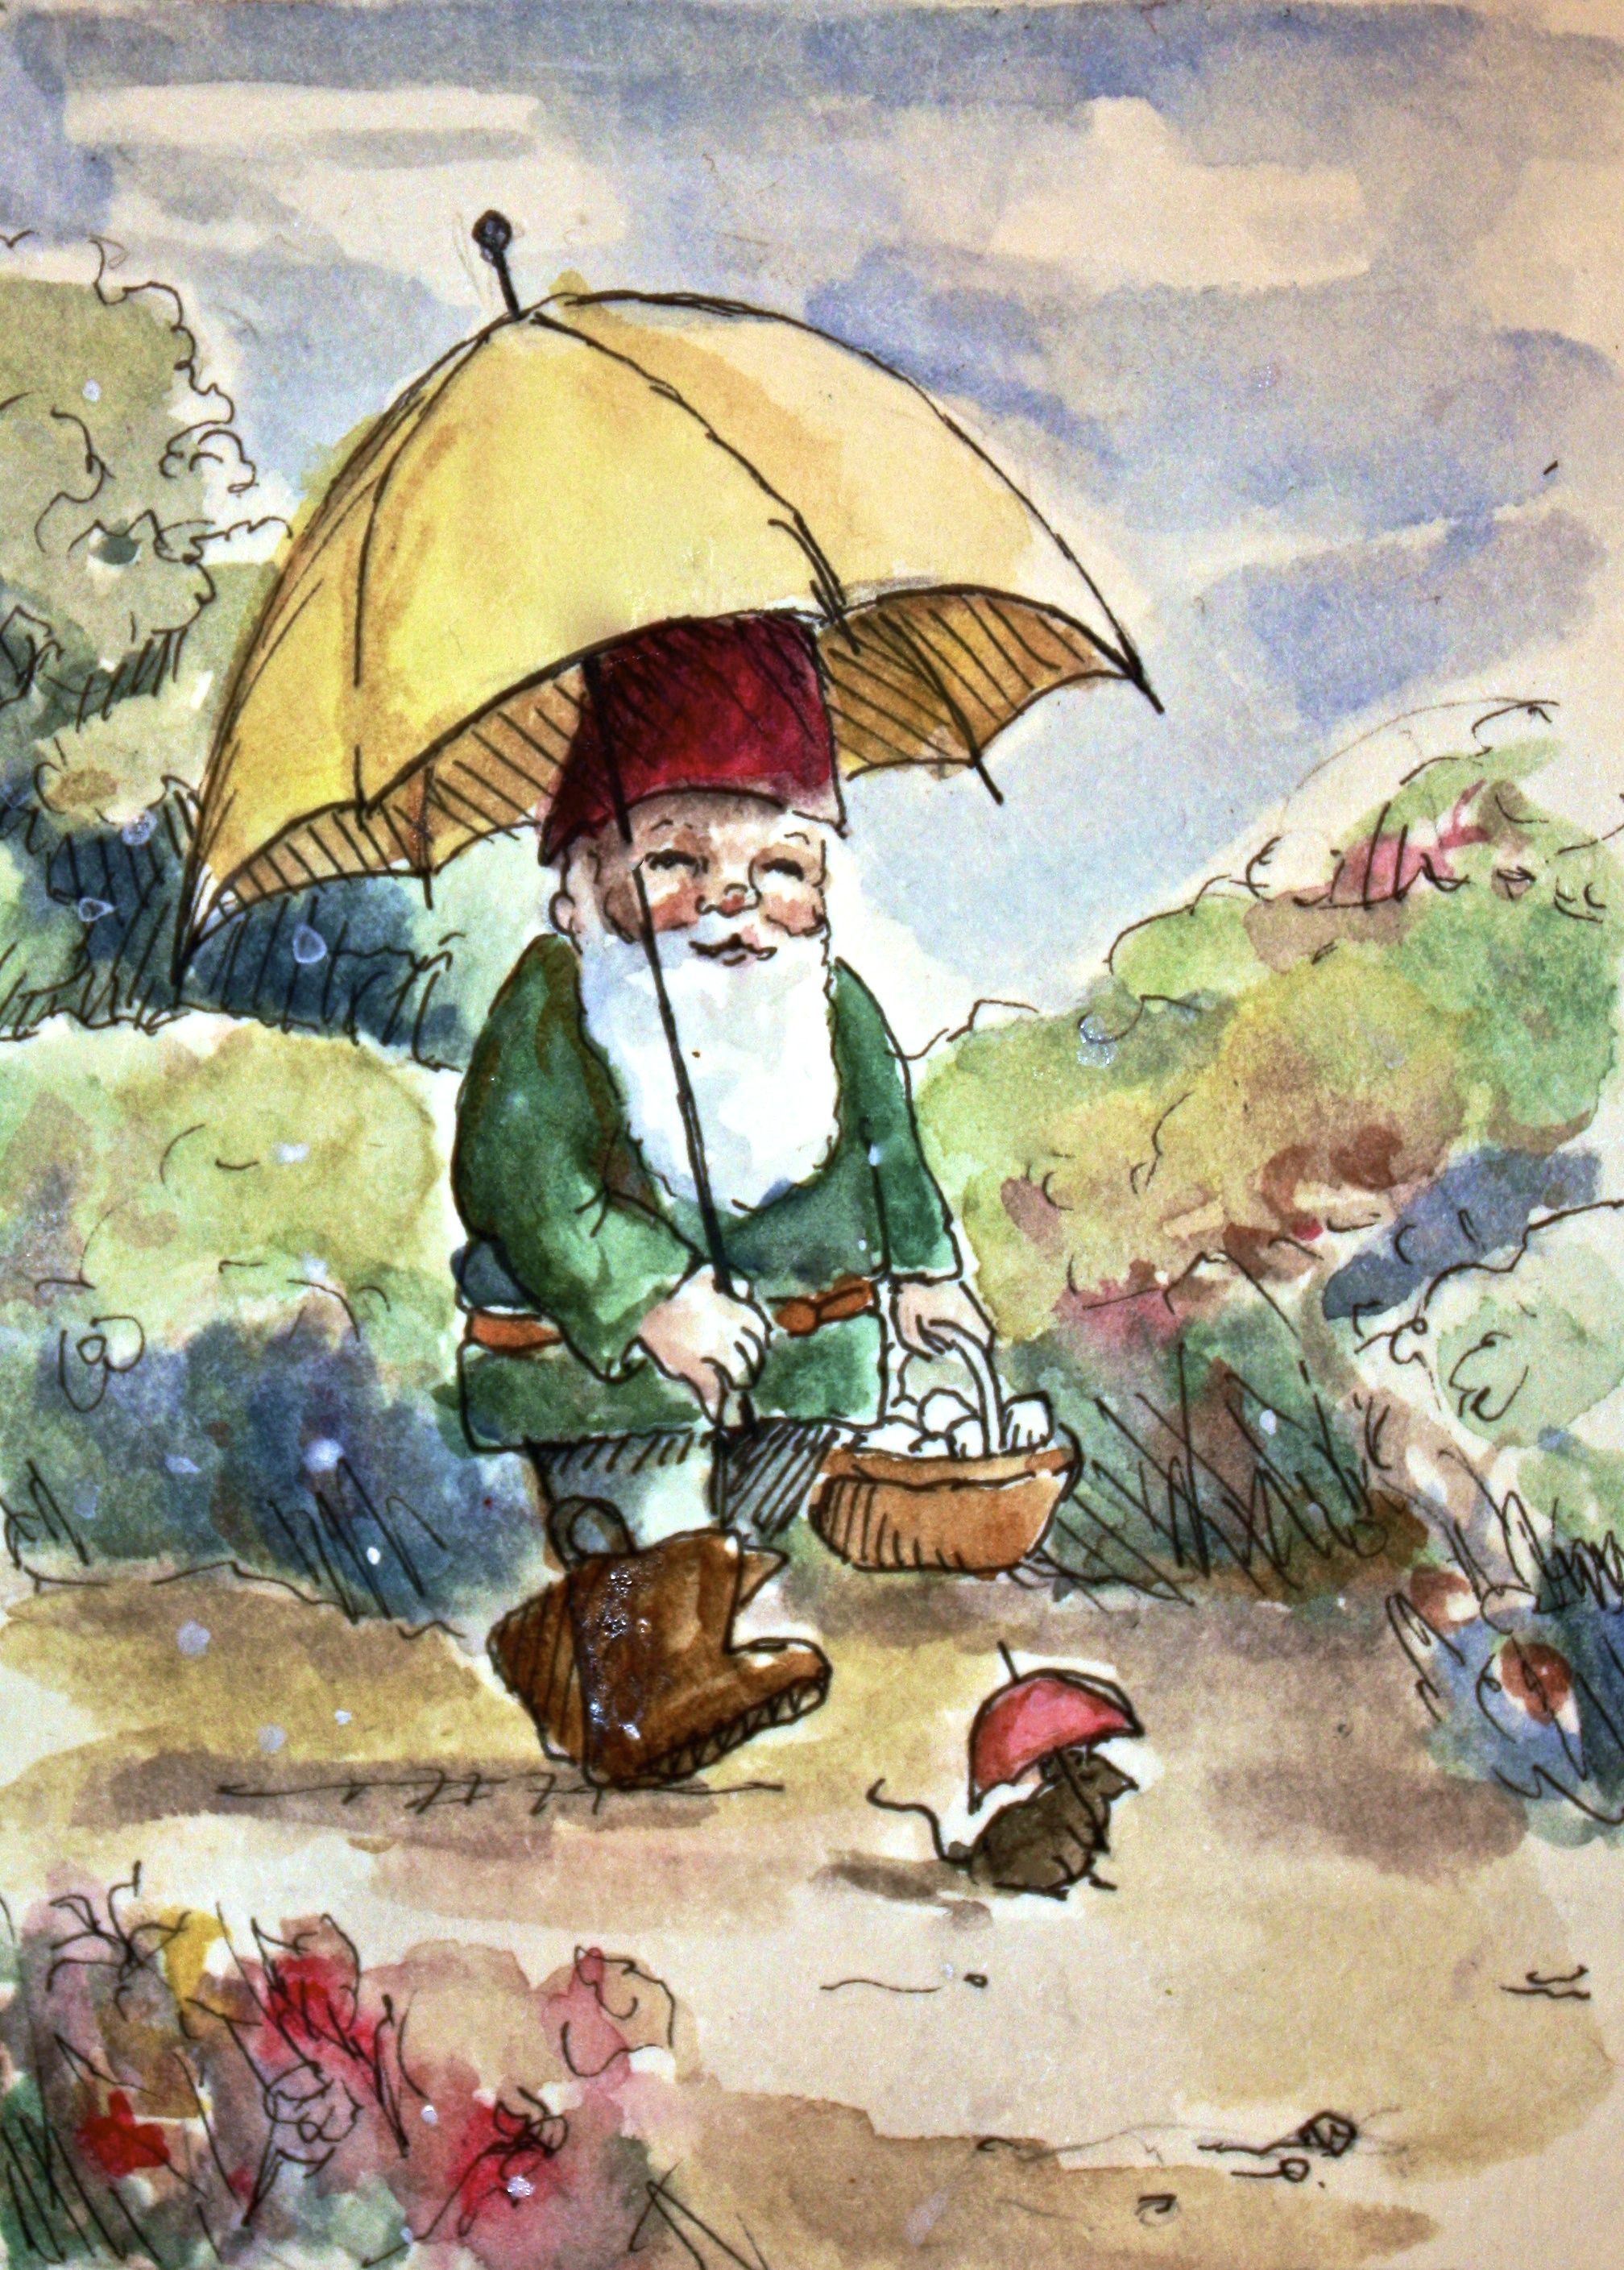 even a rainy day can be full of joy jollygnome com